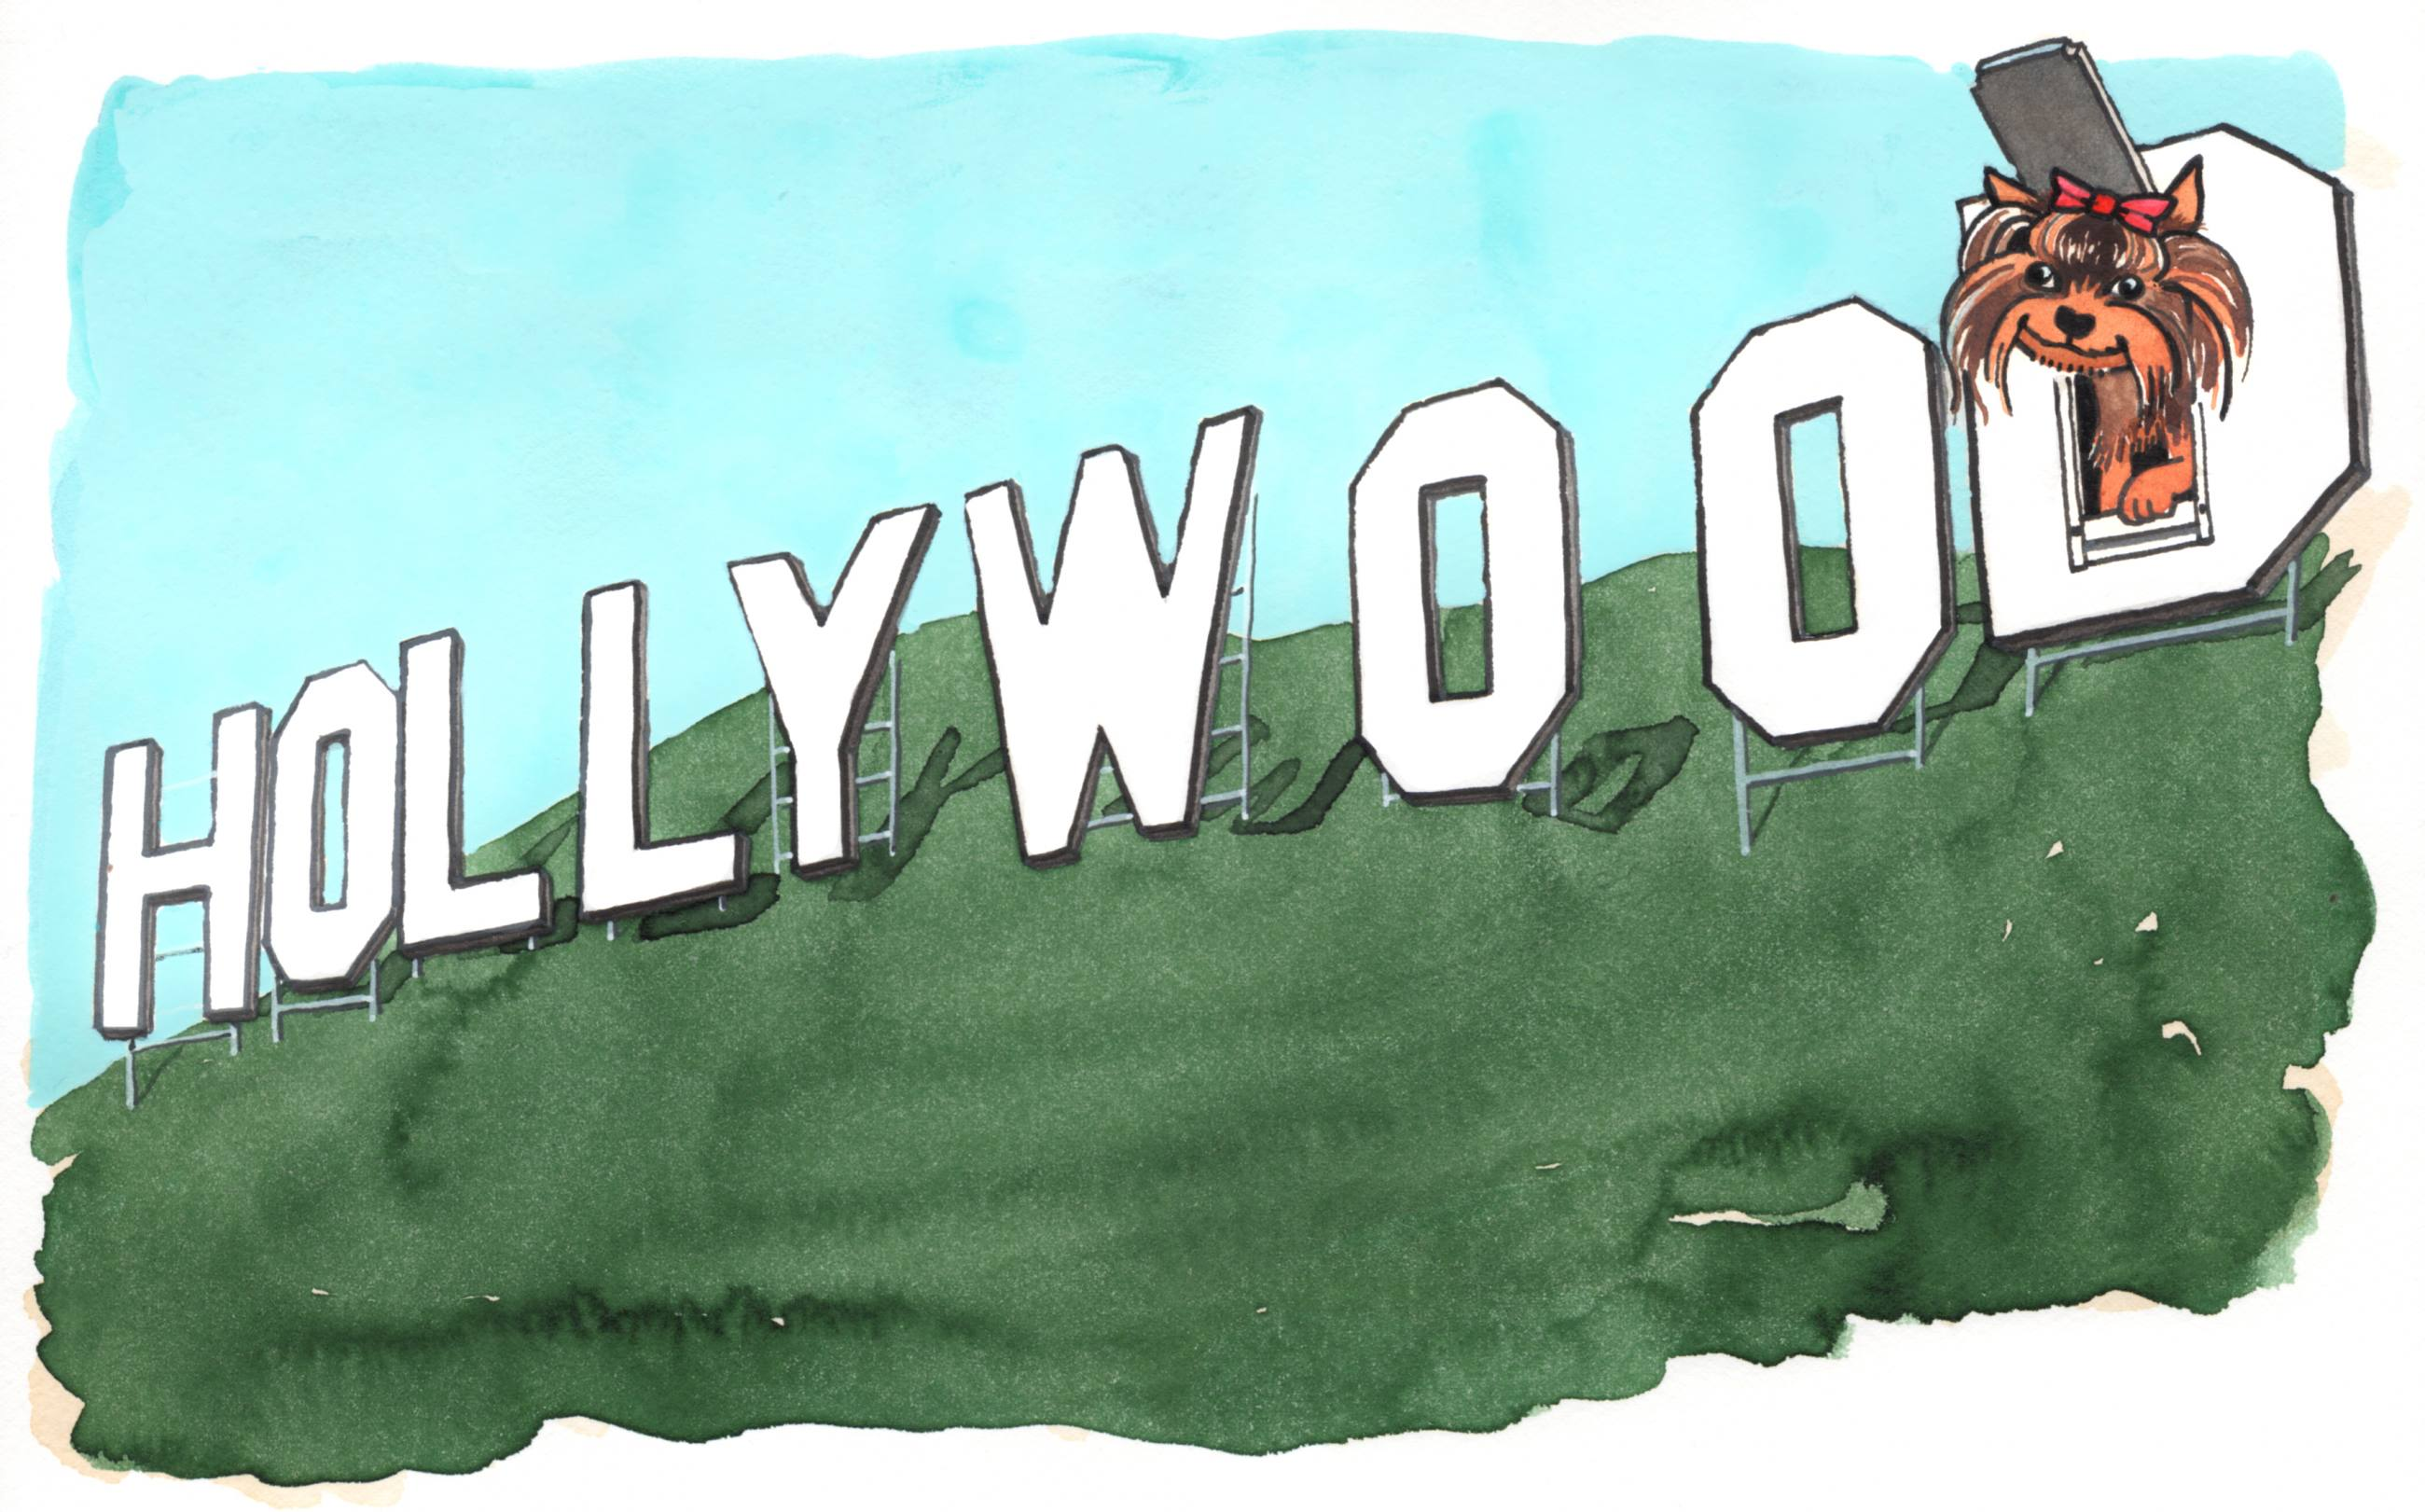 Yorkshire Terrier at the Hollywood Sign | Illustration by Max Kornell